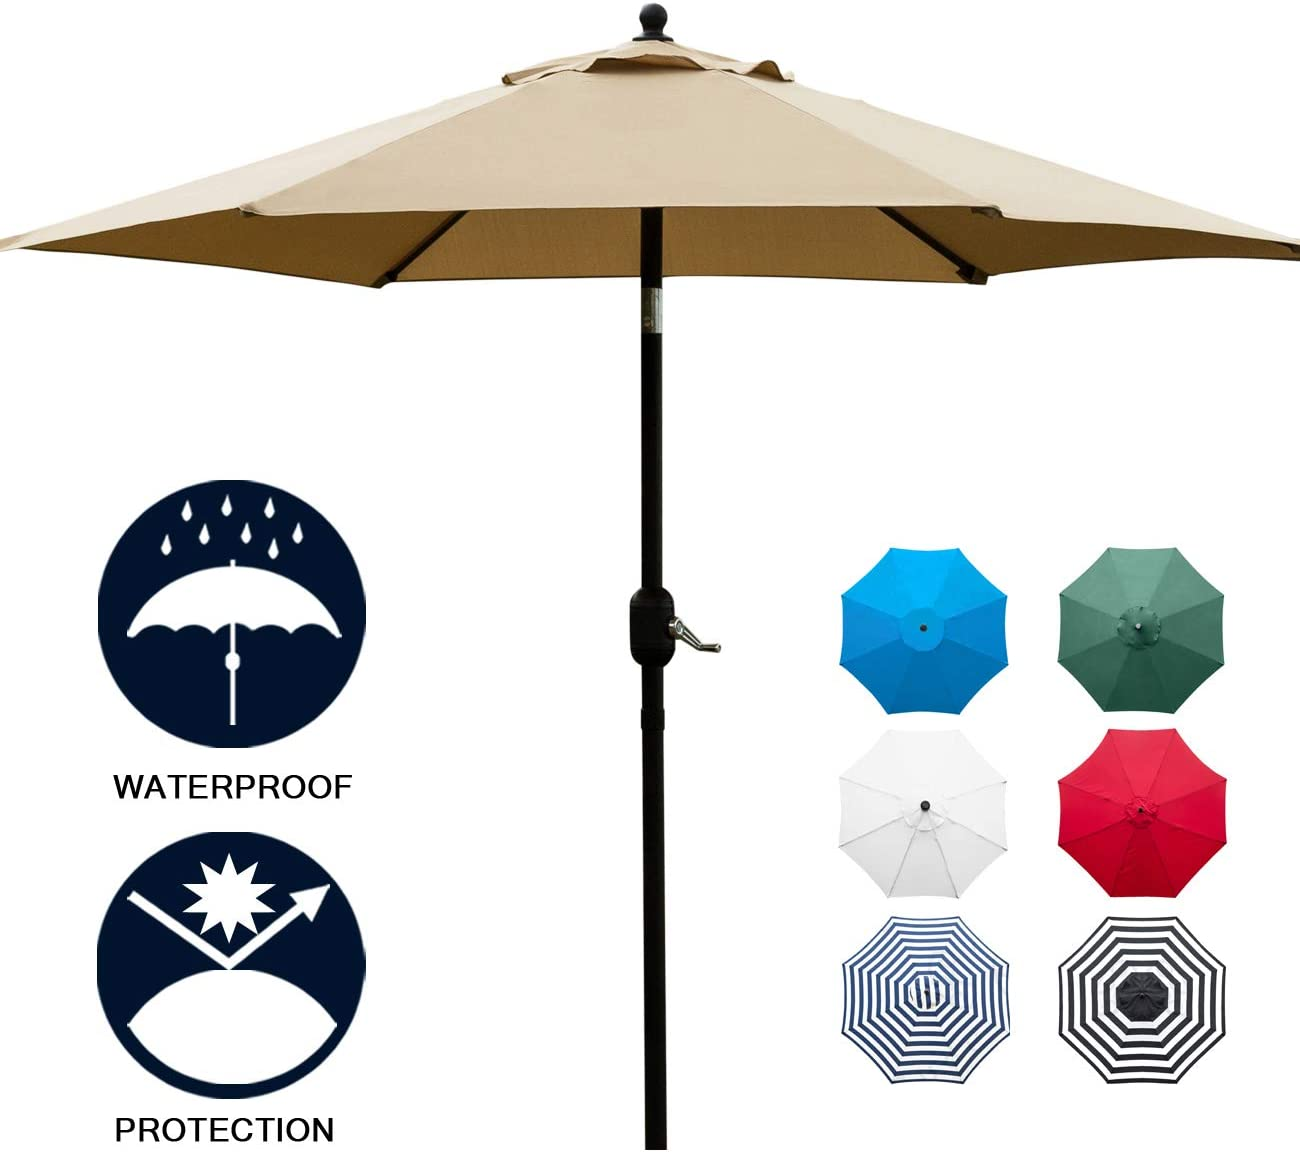 Sunnyglade 7.5 Patio Umbrella Outdoor Table Market Umbrella with Push Button Tilt Crank, 6 Ribs Tan